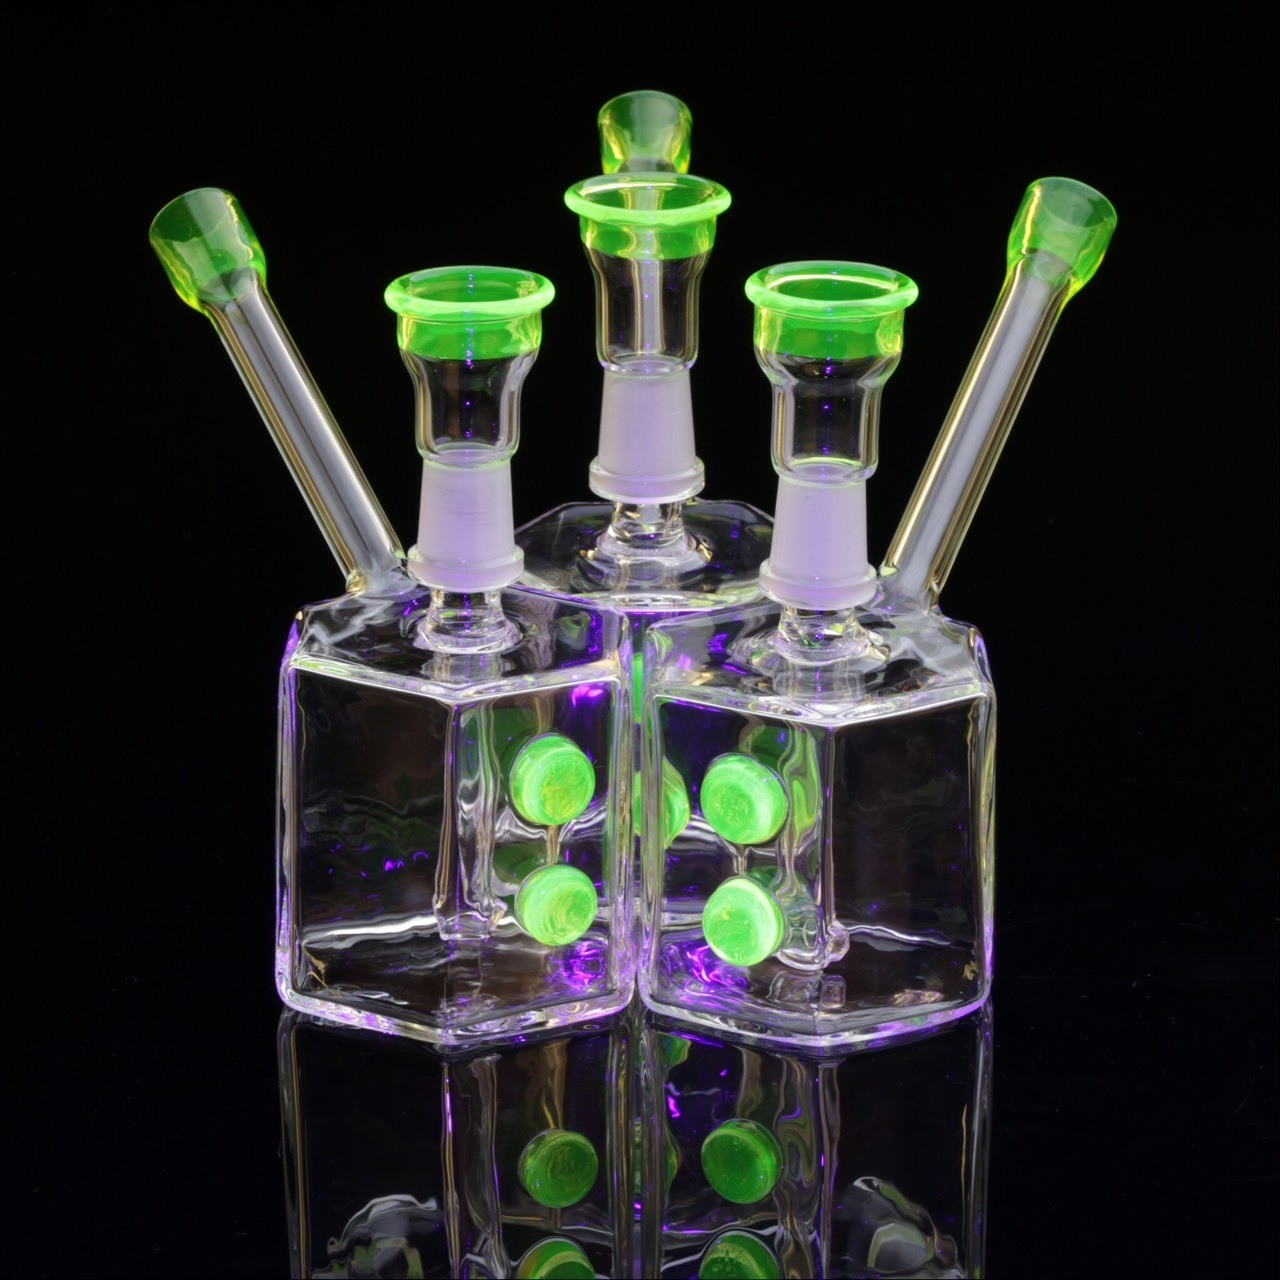 #illuminatti hex rigs from this week. this color is UV reactive and glows in the dark.